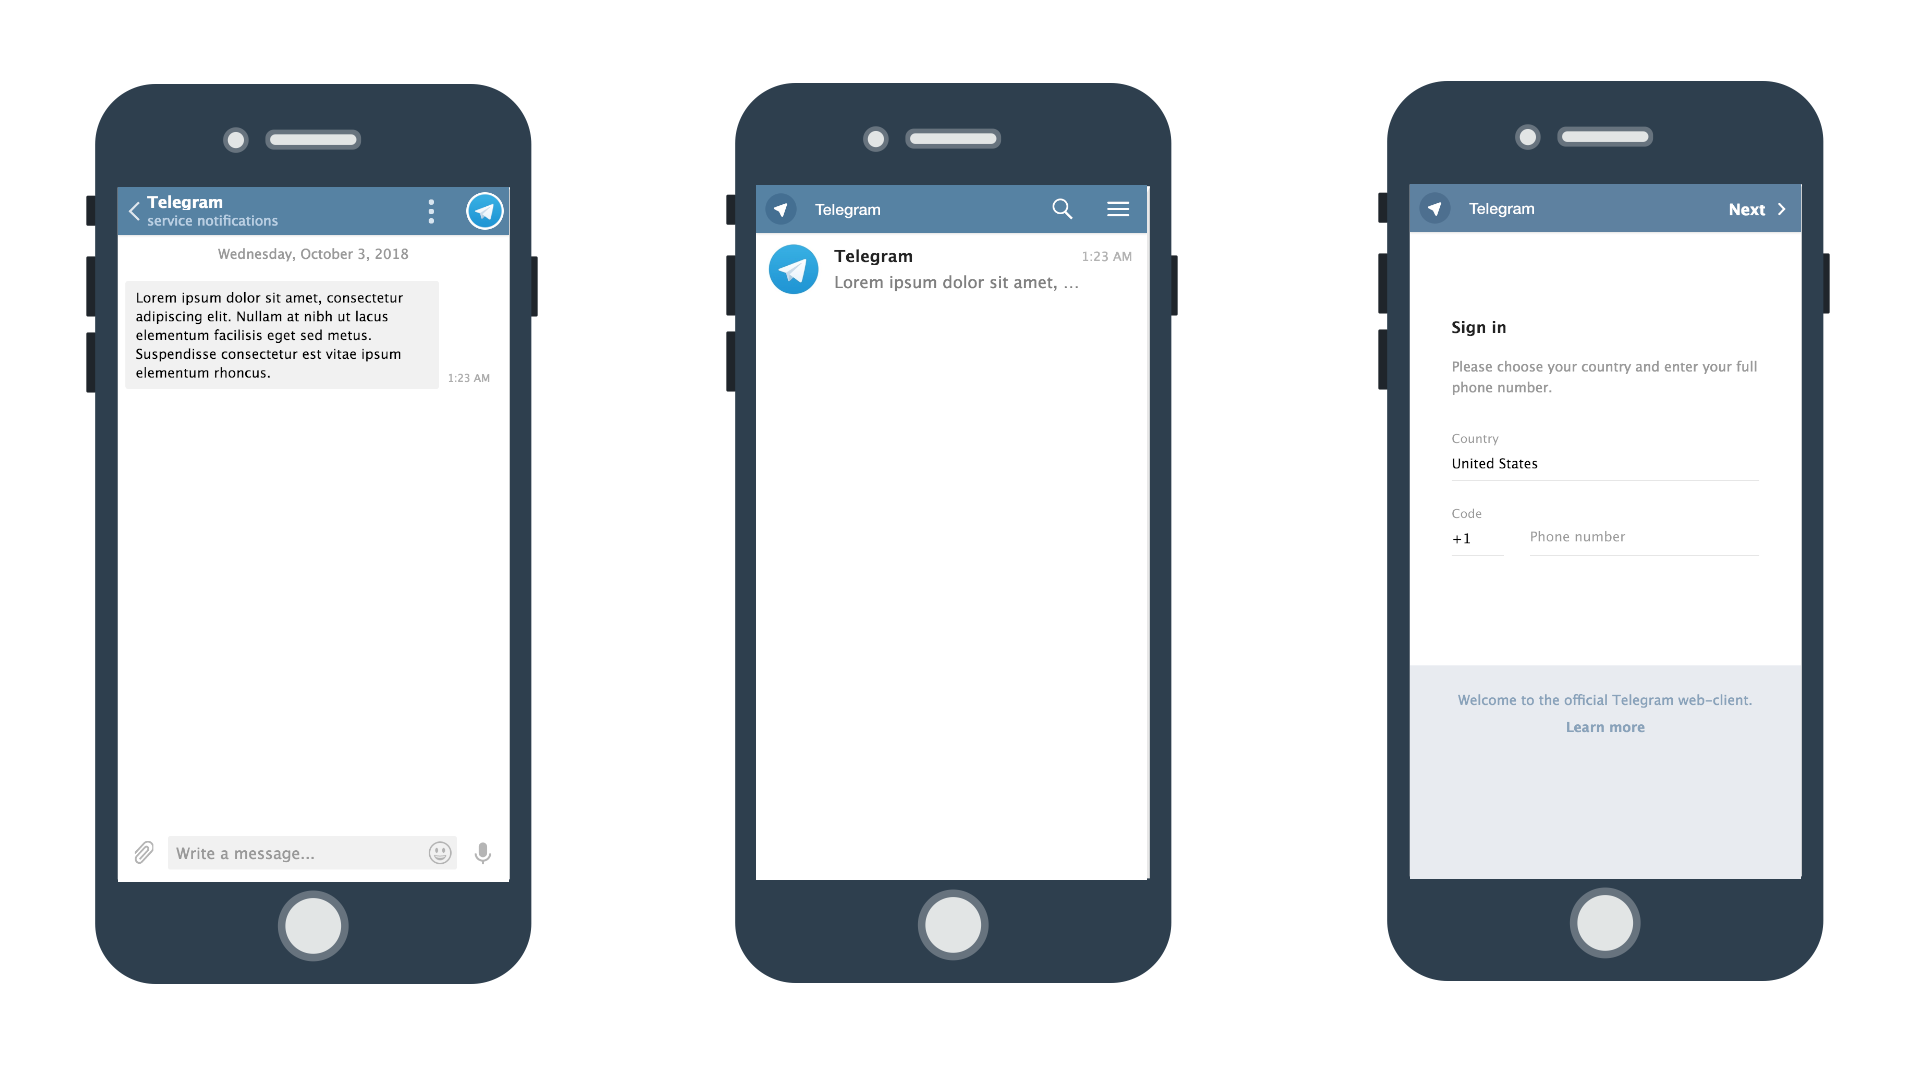 Telegram's progressive web app